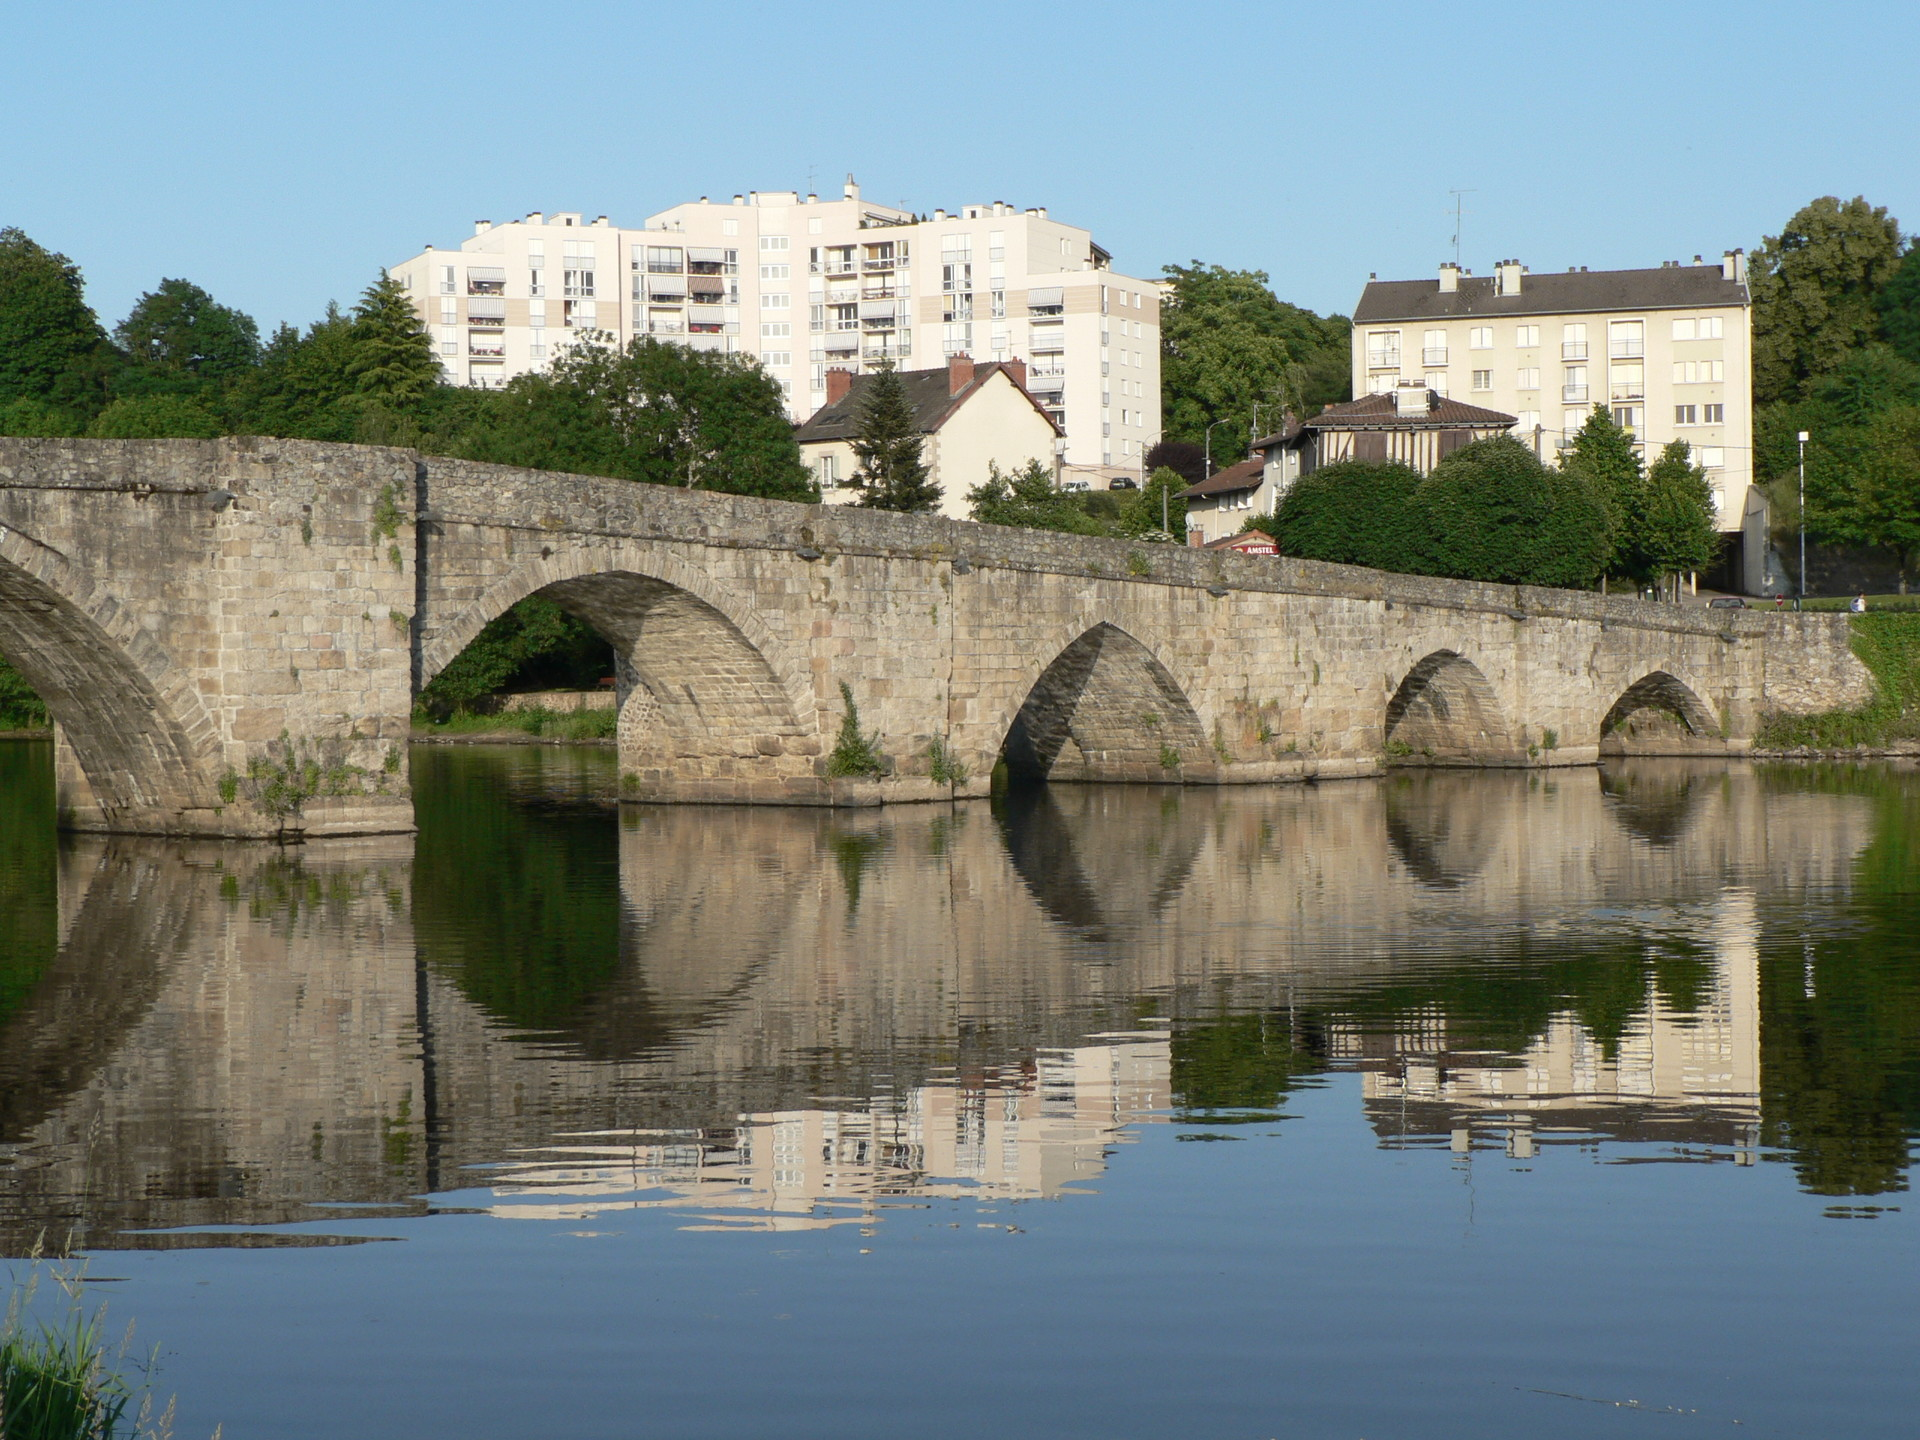 Experiencing Limoges, France by hakima